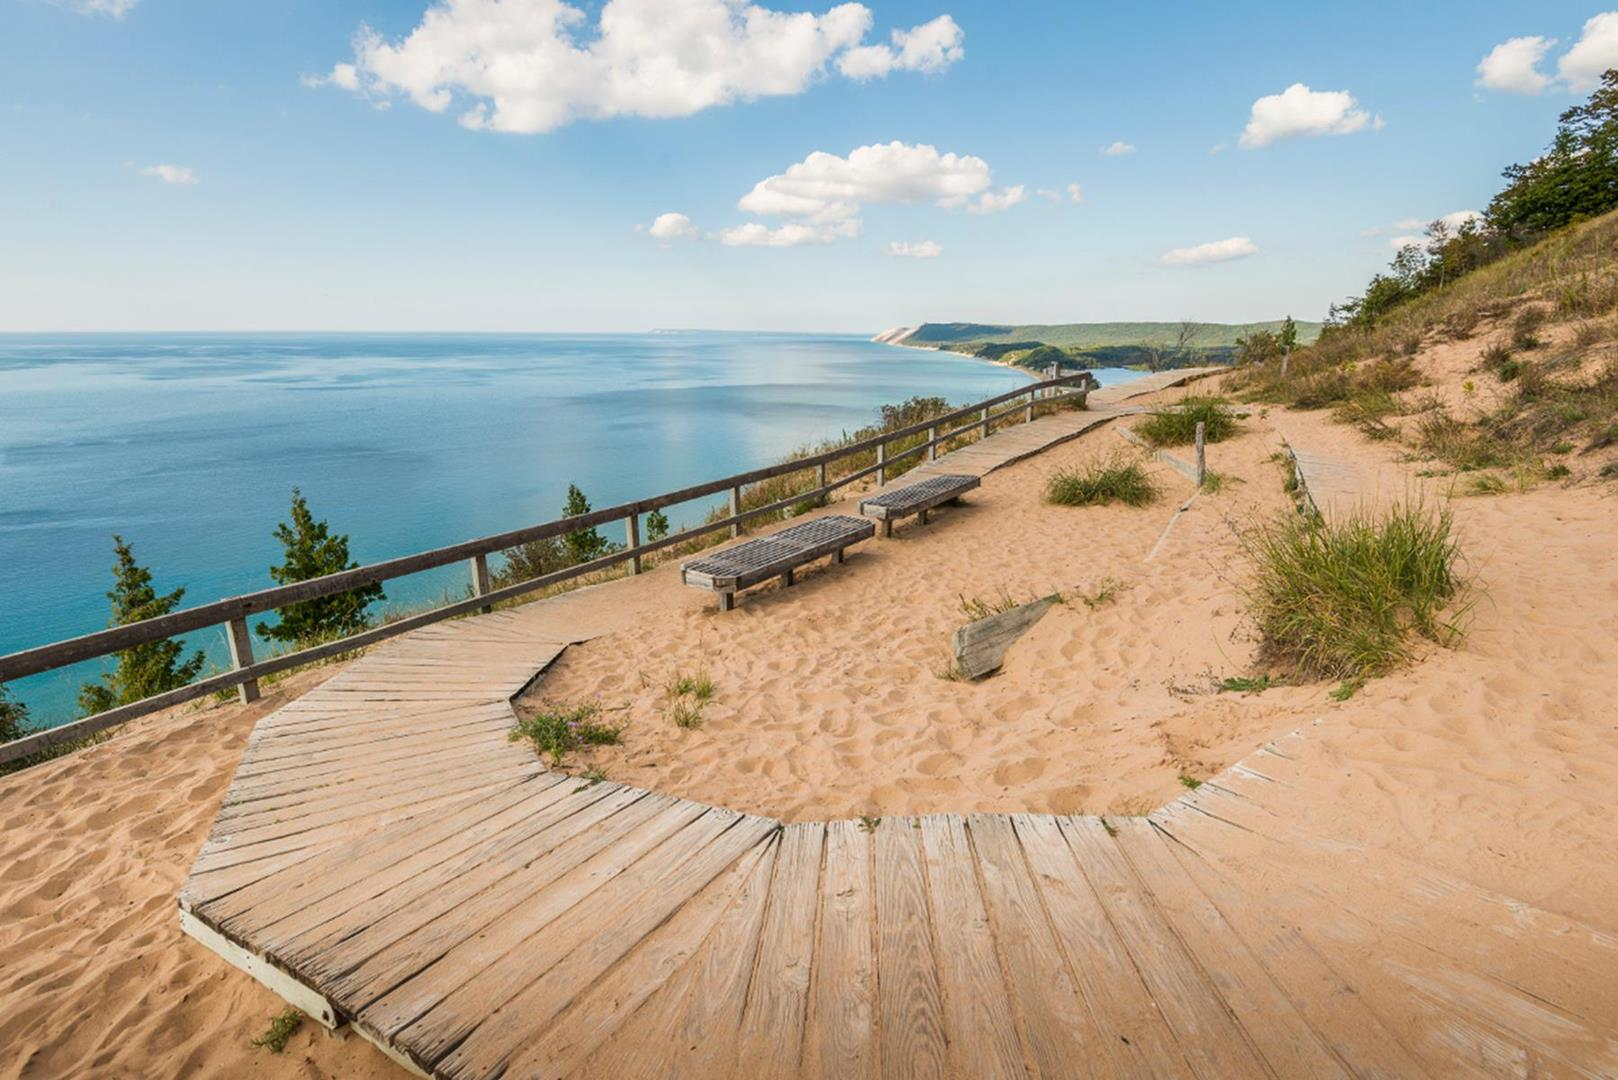 What Can T You Do In Traverse City Summer Is Beach Season As Warm Temperatures And Ample Sunshine Make Pristine Lake Michigan Beaches More Tantalizing